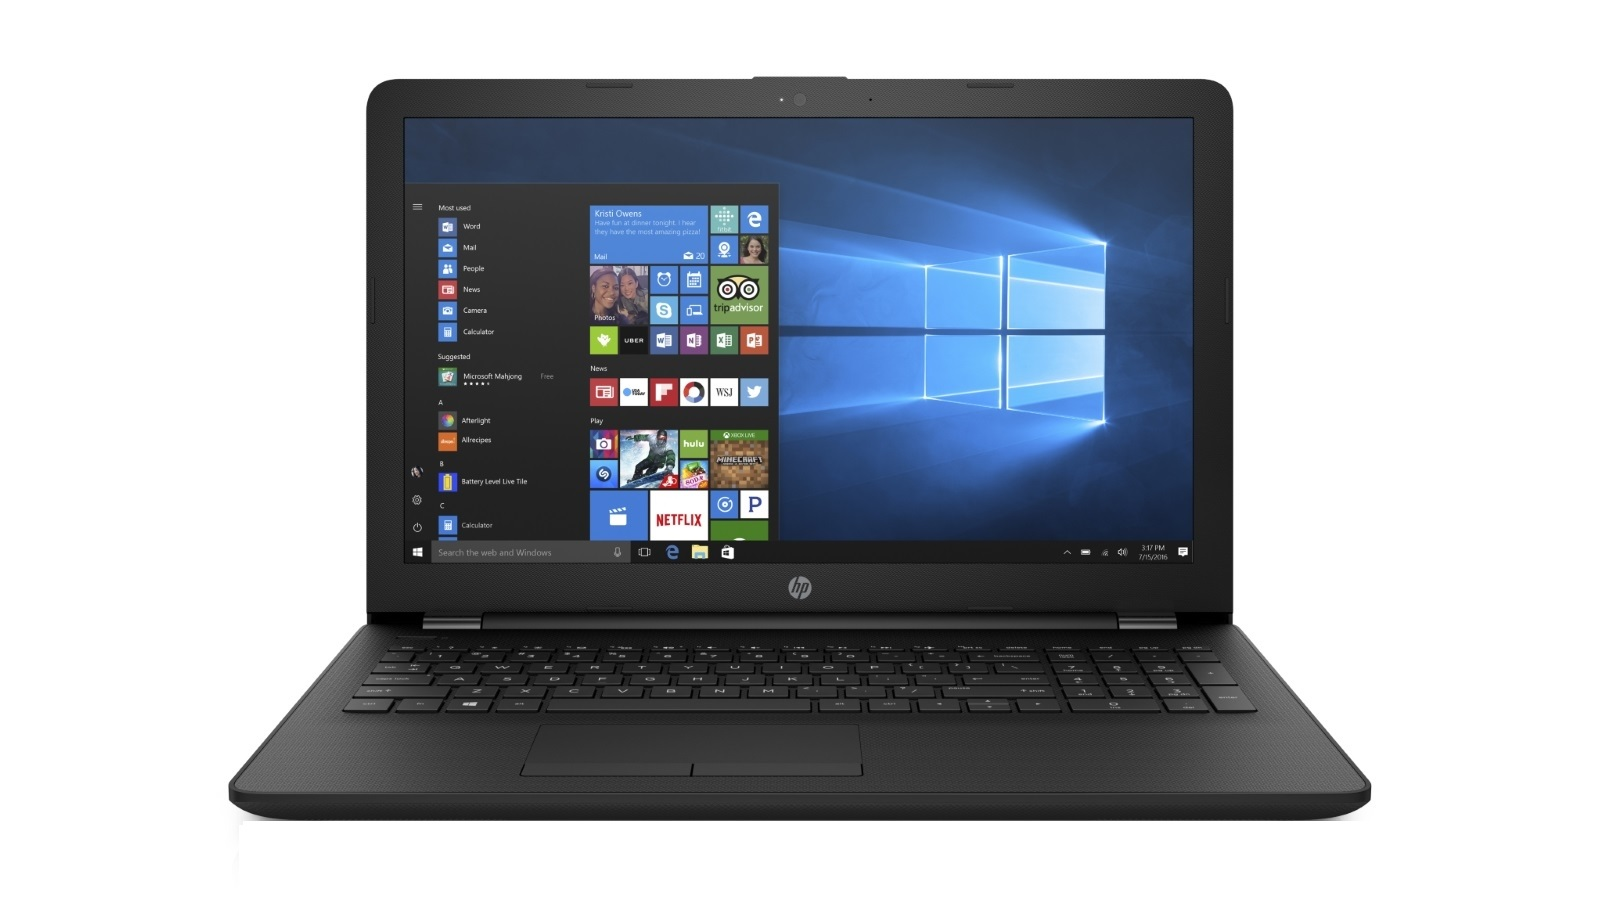 HP 15 BW521AU 2UR20PA 15.6inch Laptop